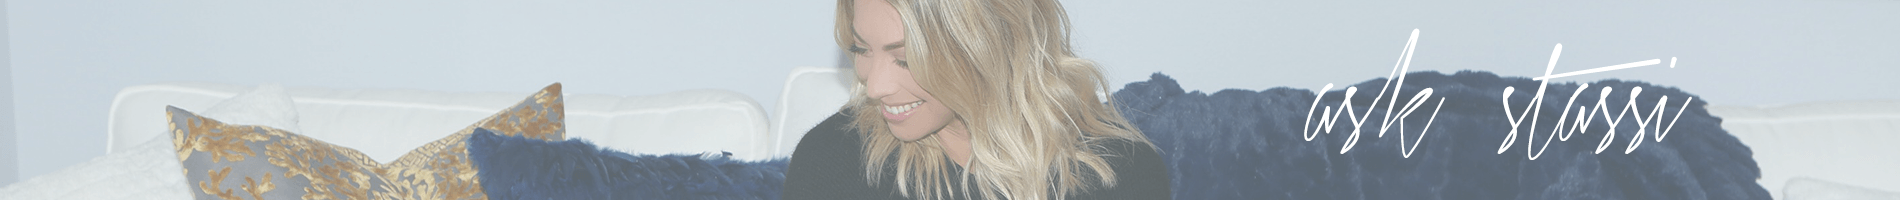 Ask Stassi - Straight Up With Stassi Podcast - Stassi Schroeder